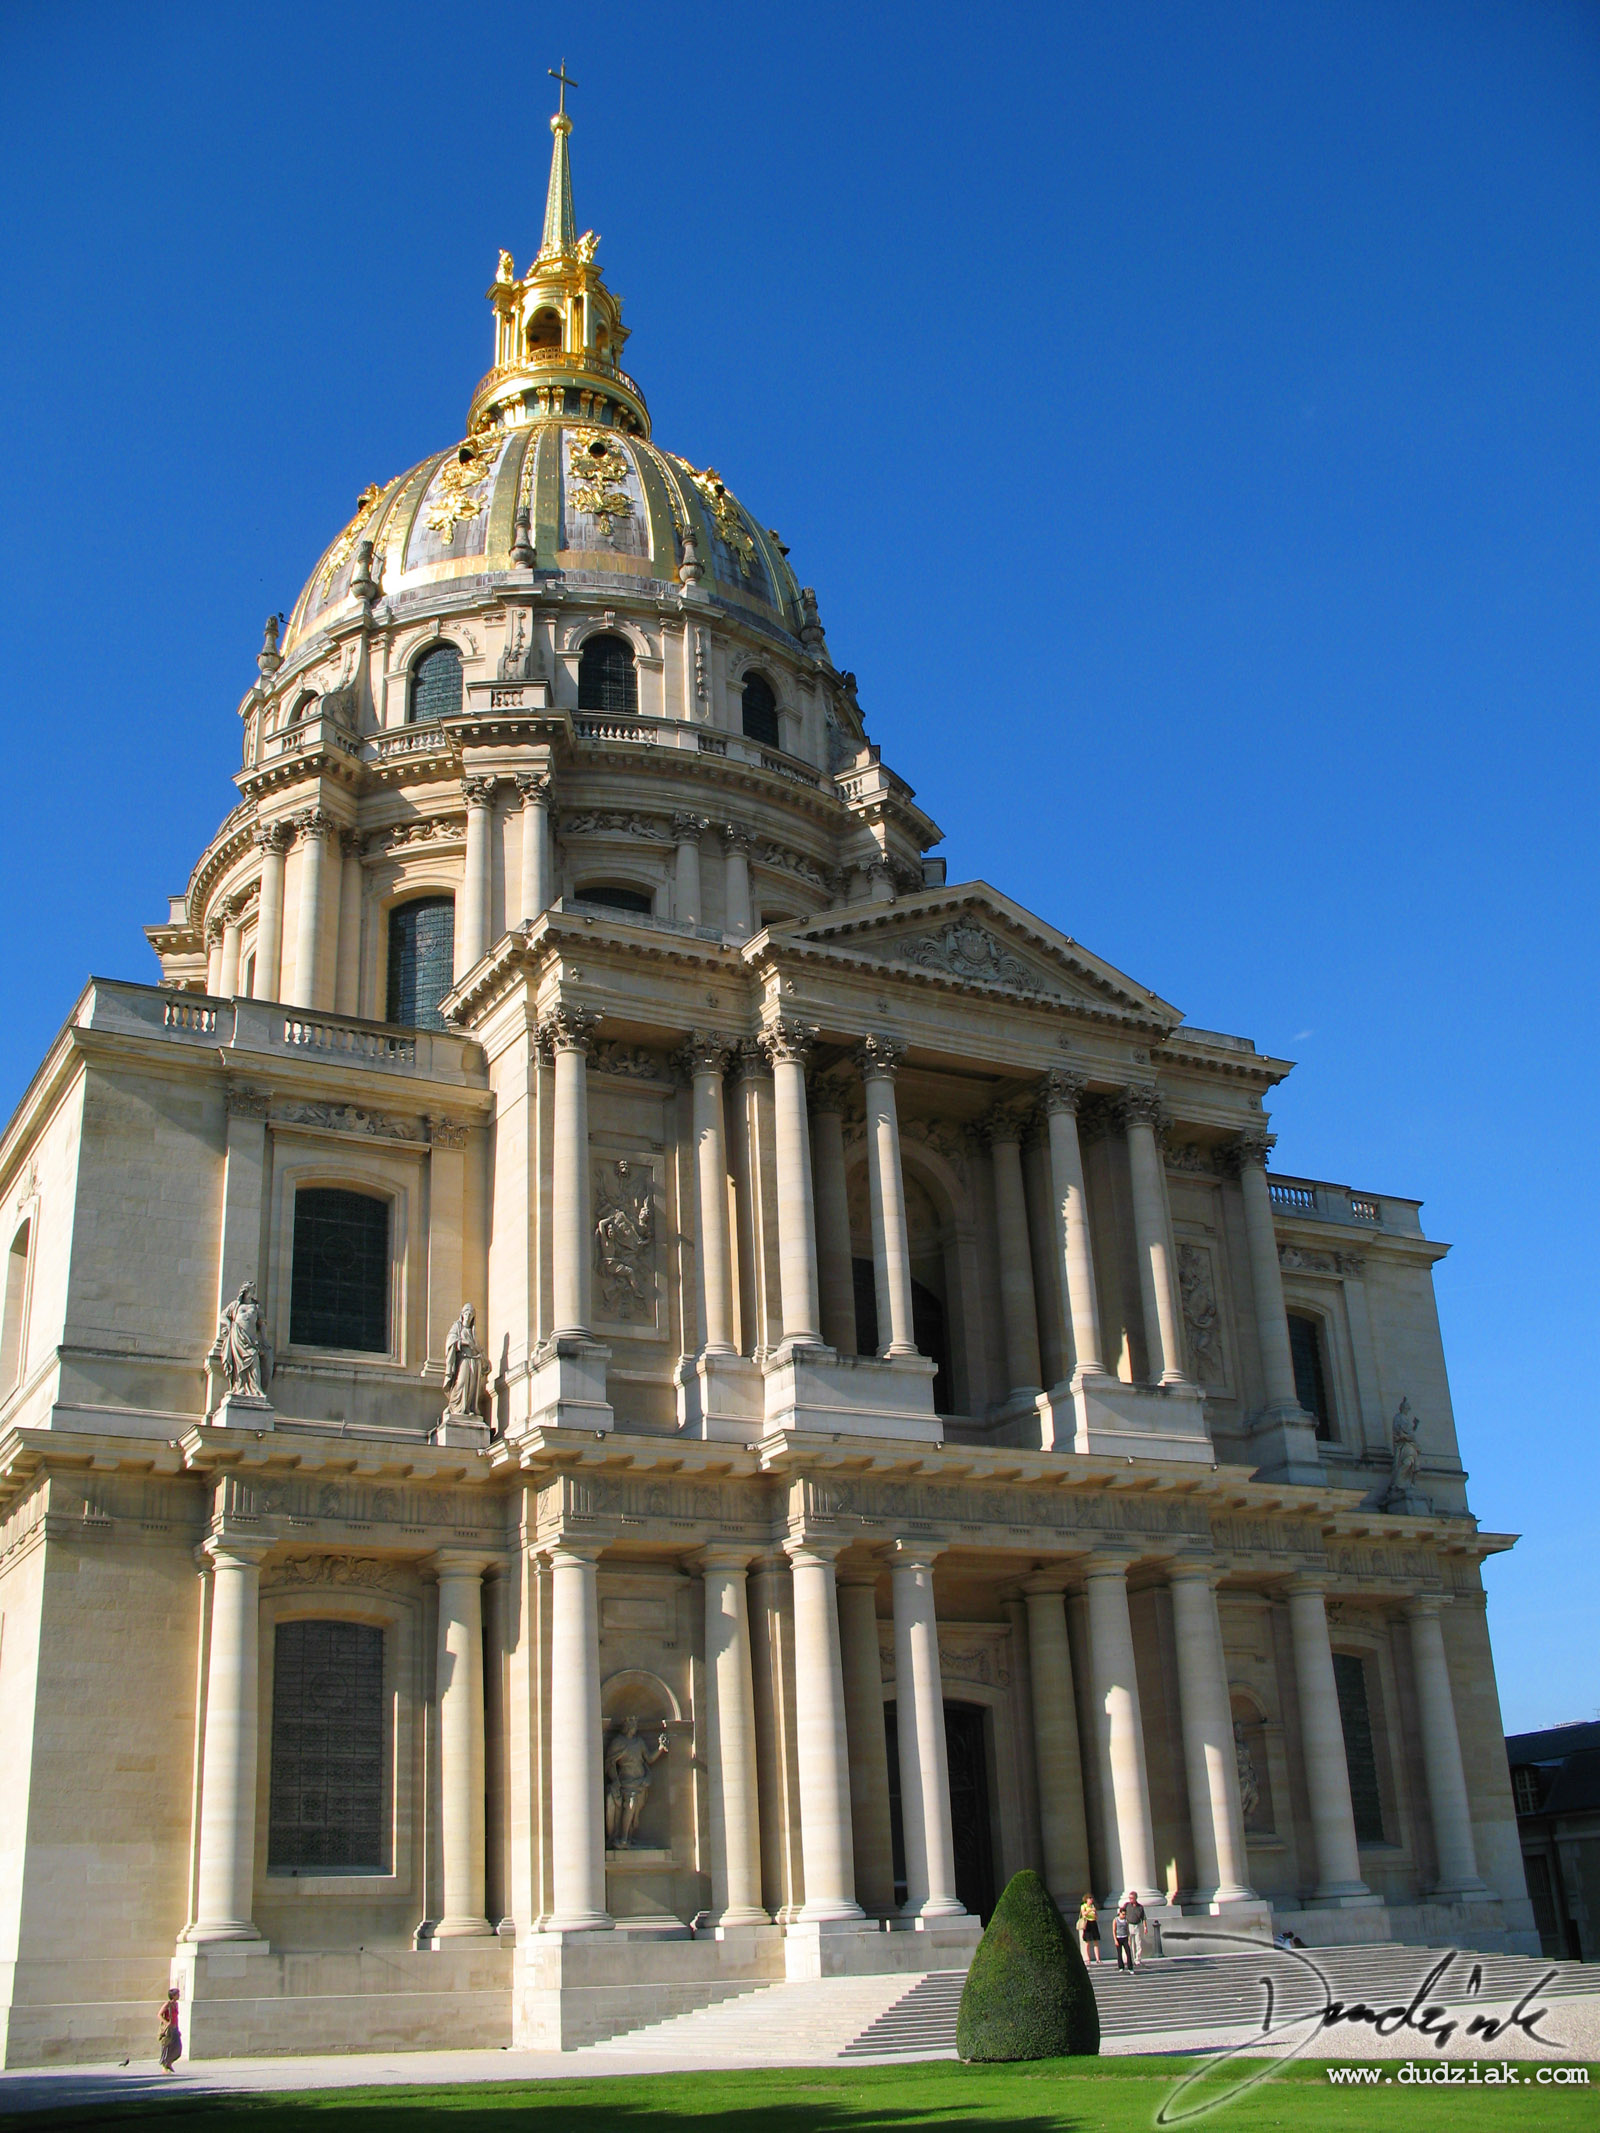 Paris France,  Les Invalides,  Military Museum